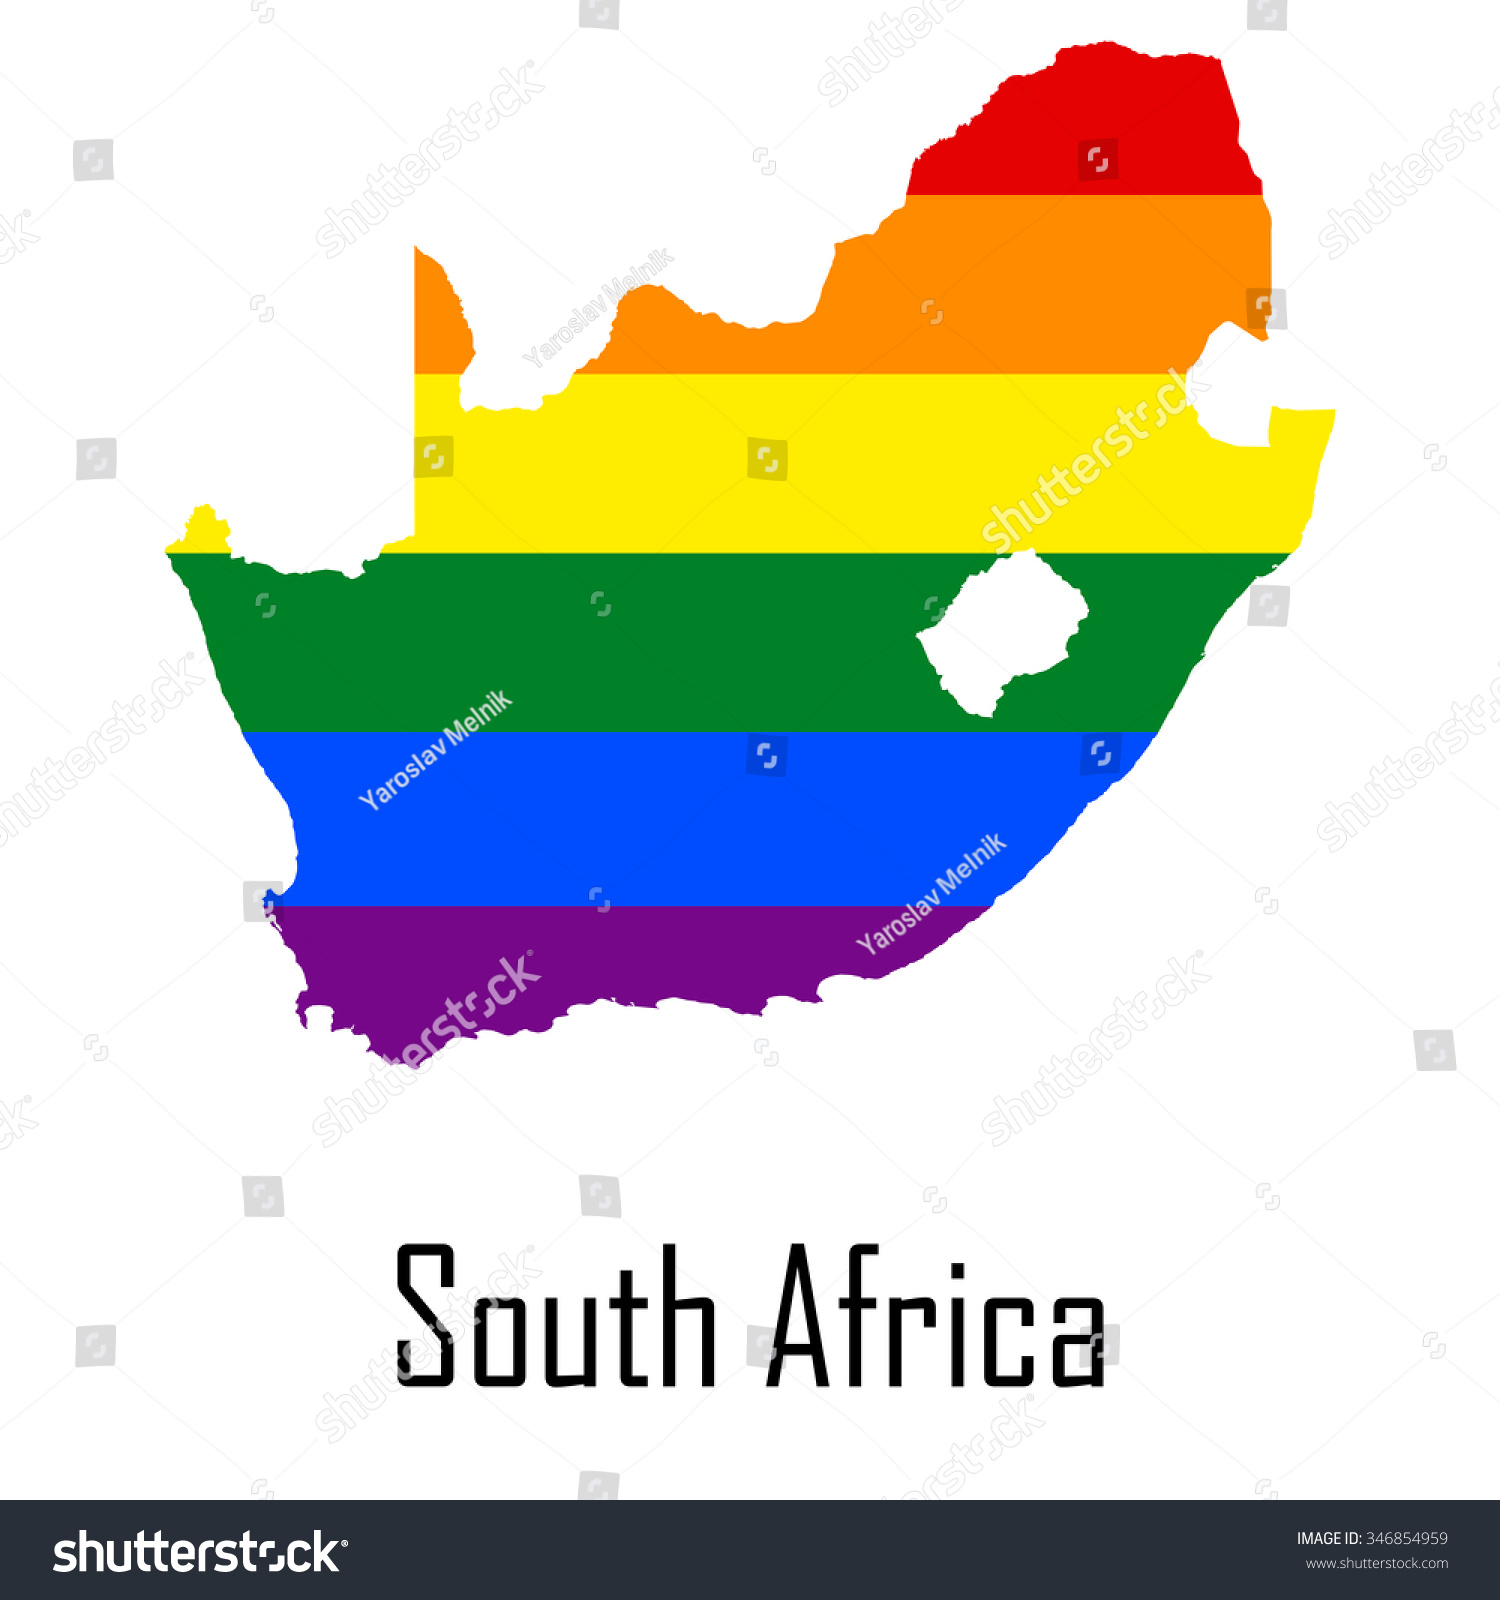 gay and lesbian dating south africa The most popular gay south africa news and lifestyle website home  gay dating | young people on  fired lesbian minister ends legal action against methodist.